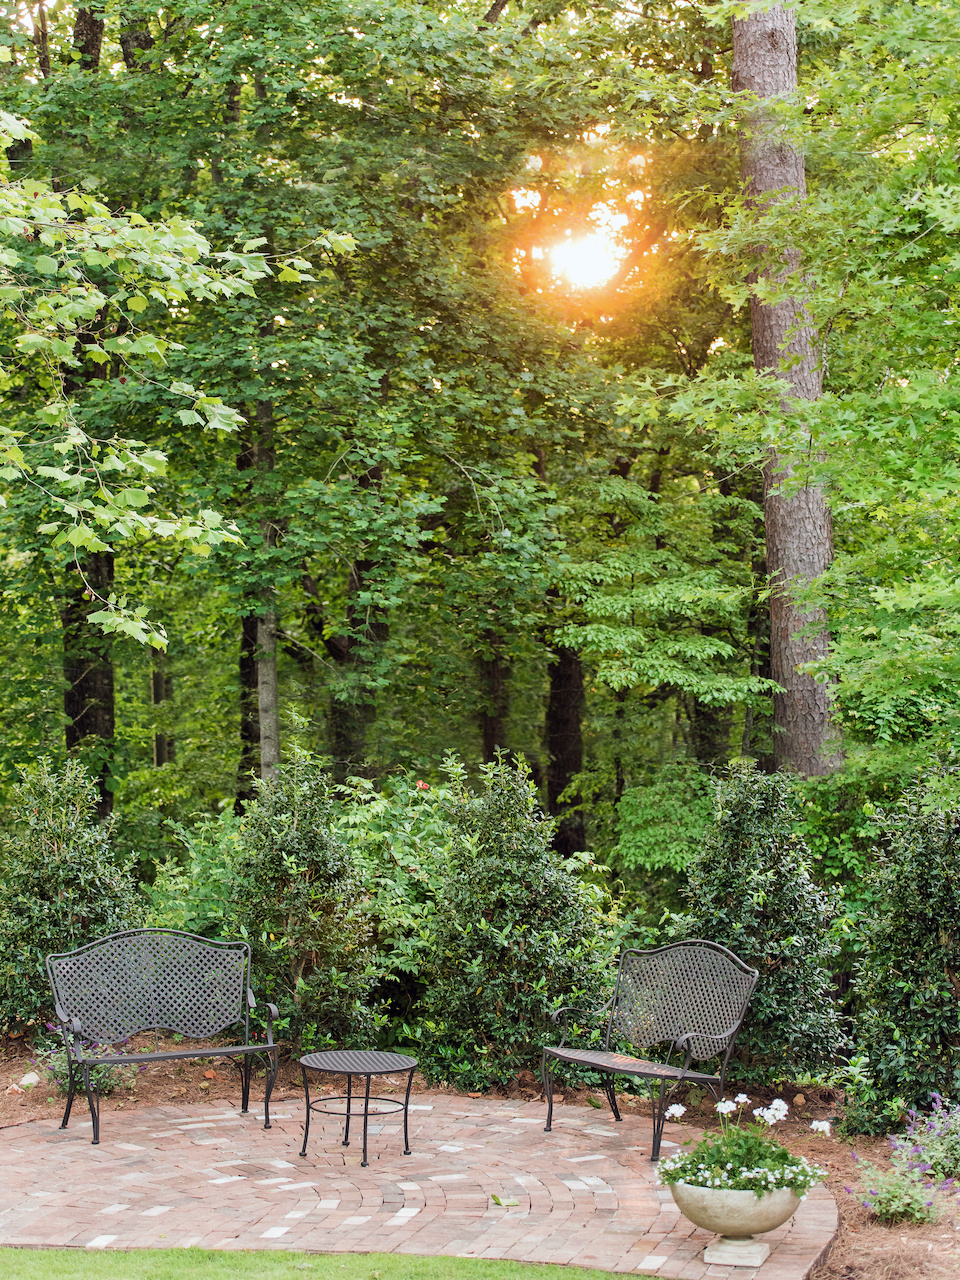 The family plans to add a fire pit to this patio for cool evenings under the stars.